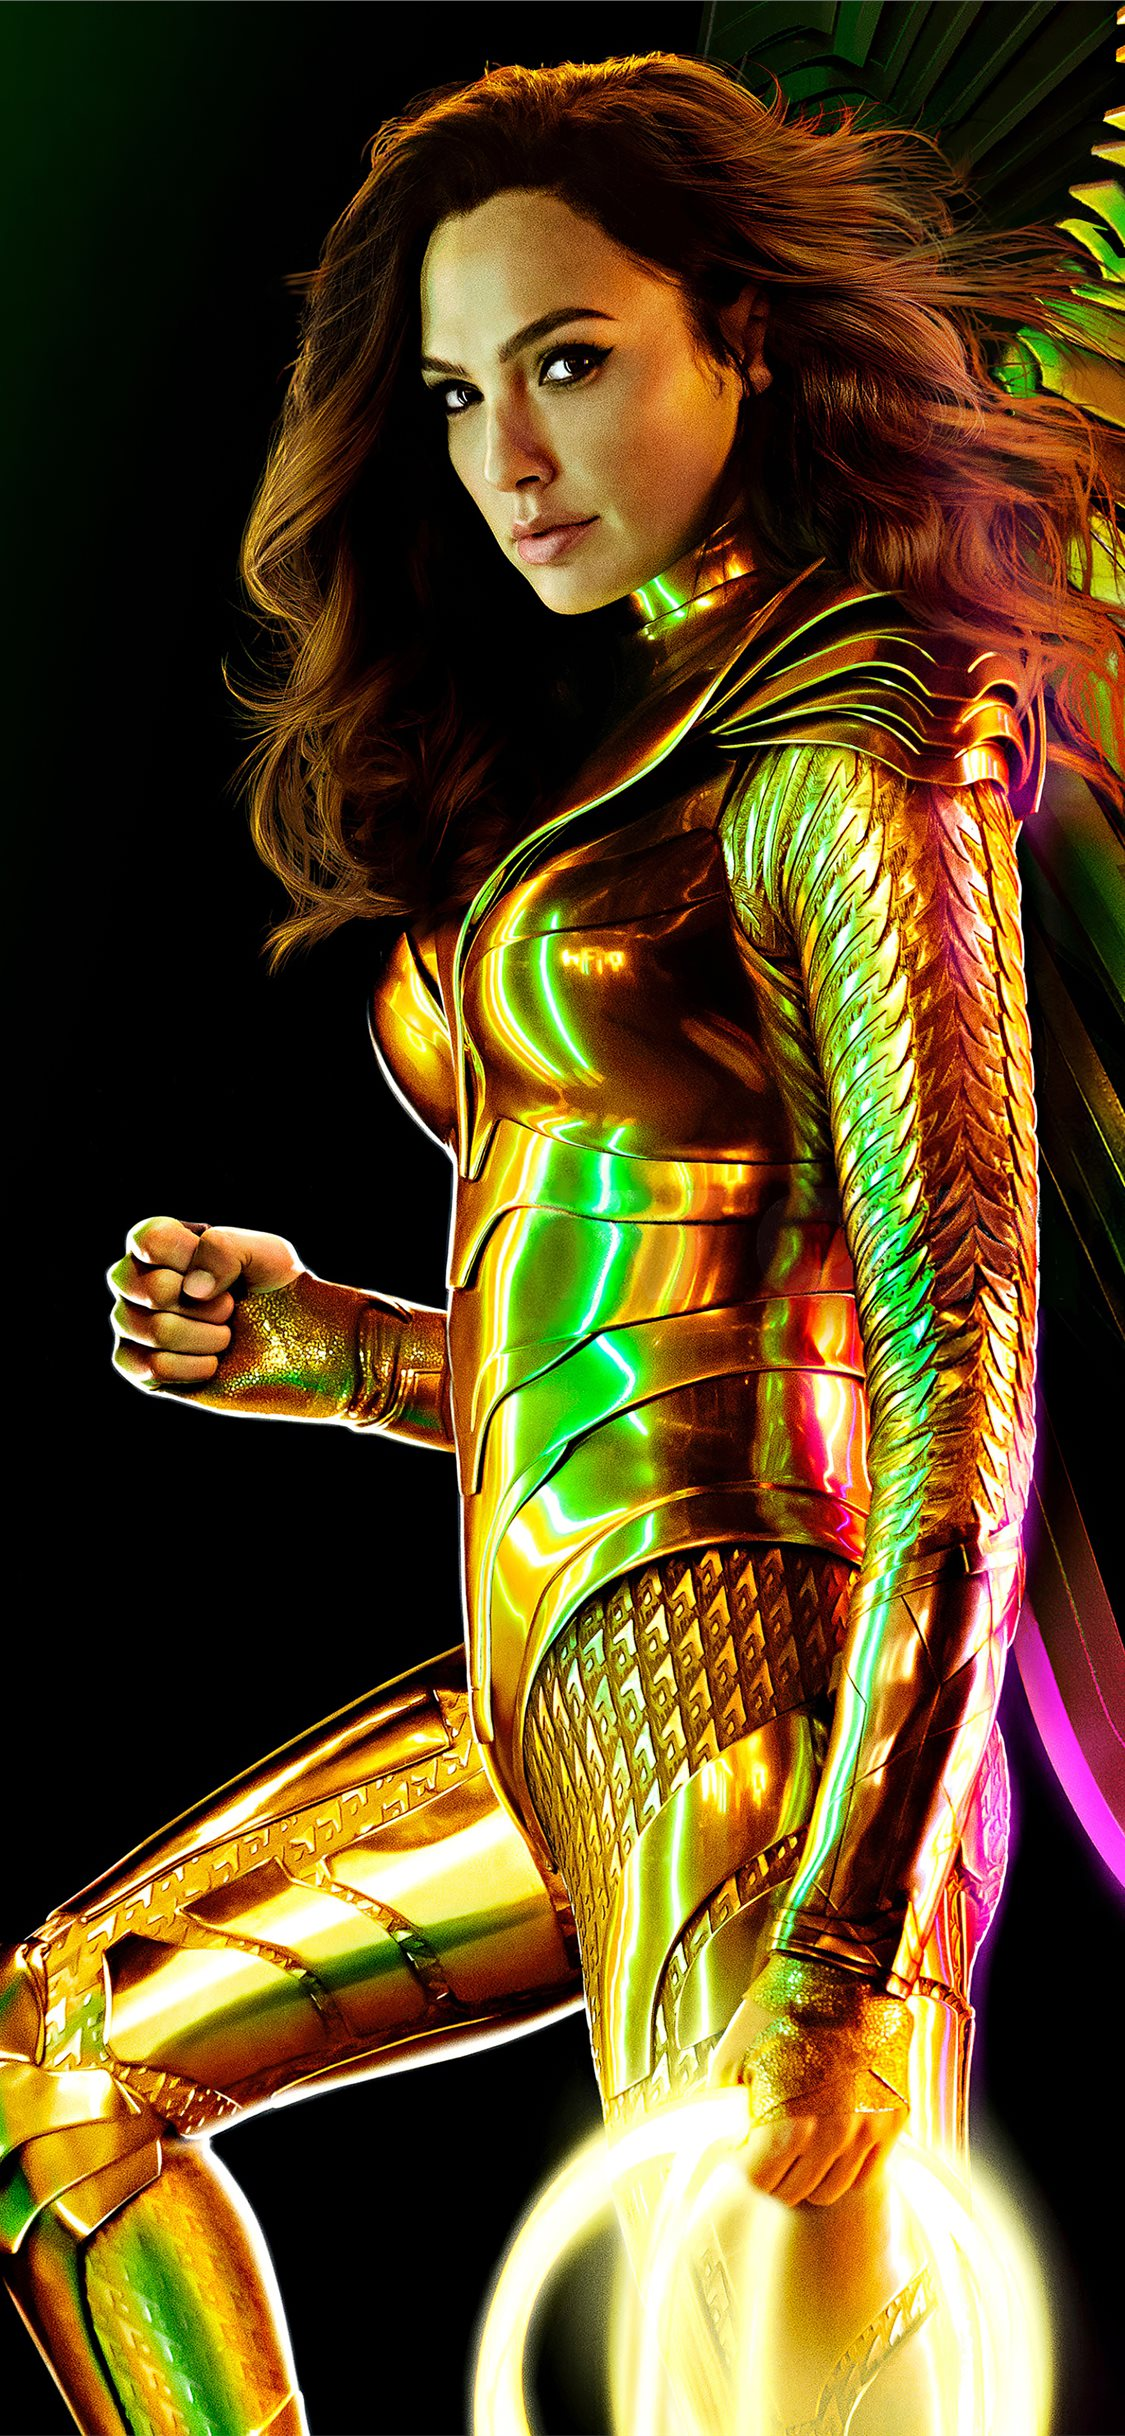 Wonder Woman 1984 Movie 2020 4k Iphone 11 Wallpapers Free Download